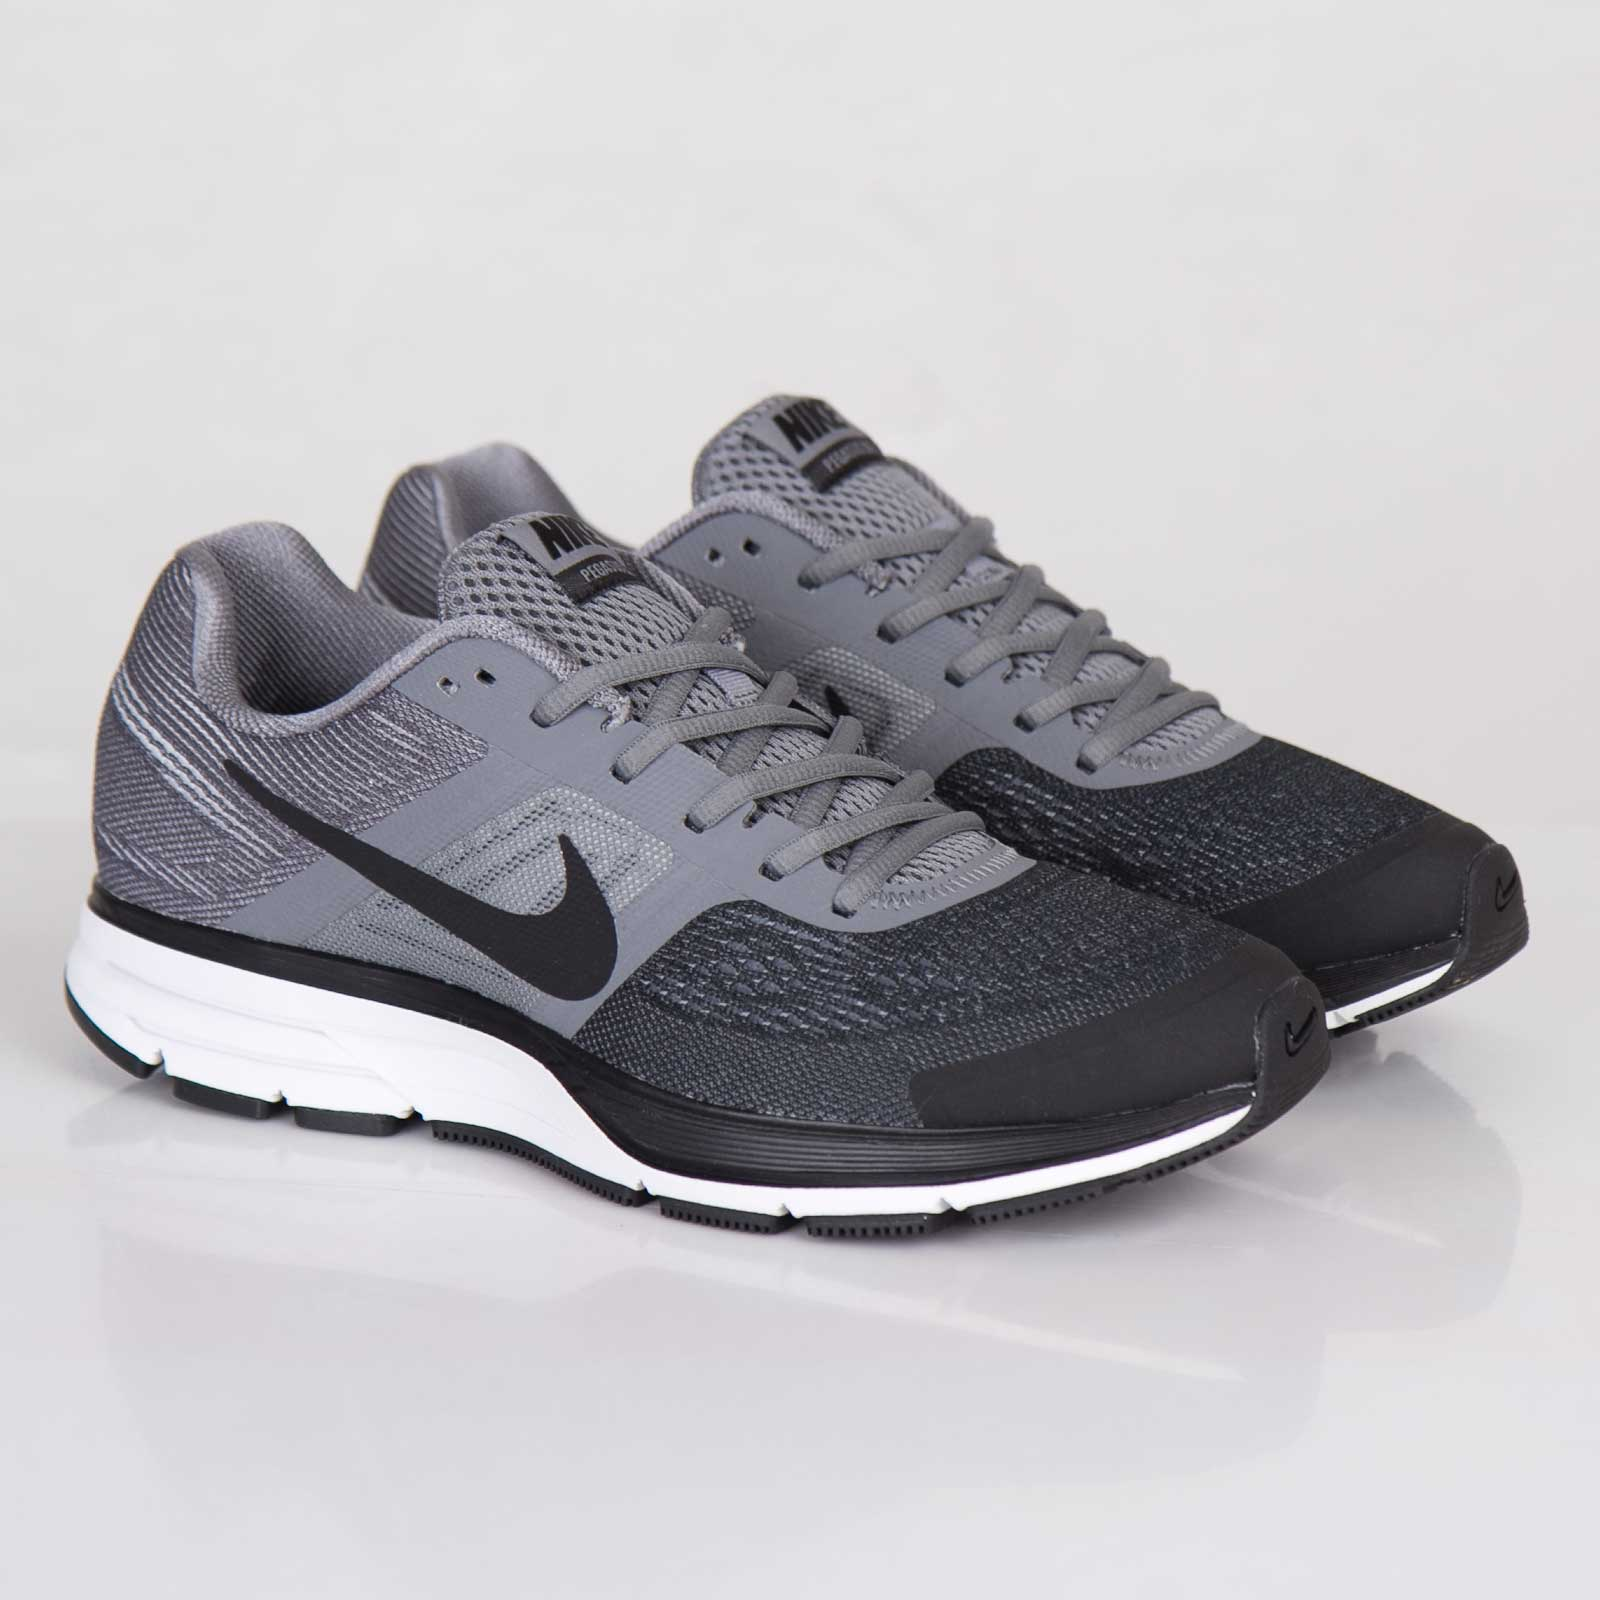 save off a6275 3786a Nike Air Pegasus+ 30 - 599205-010 - Sneakersnstuff ...